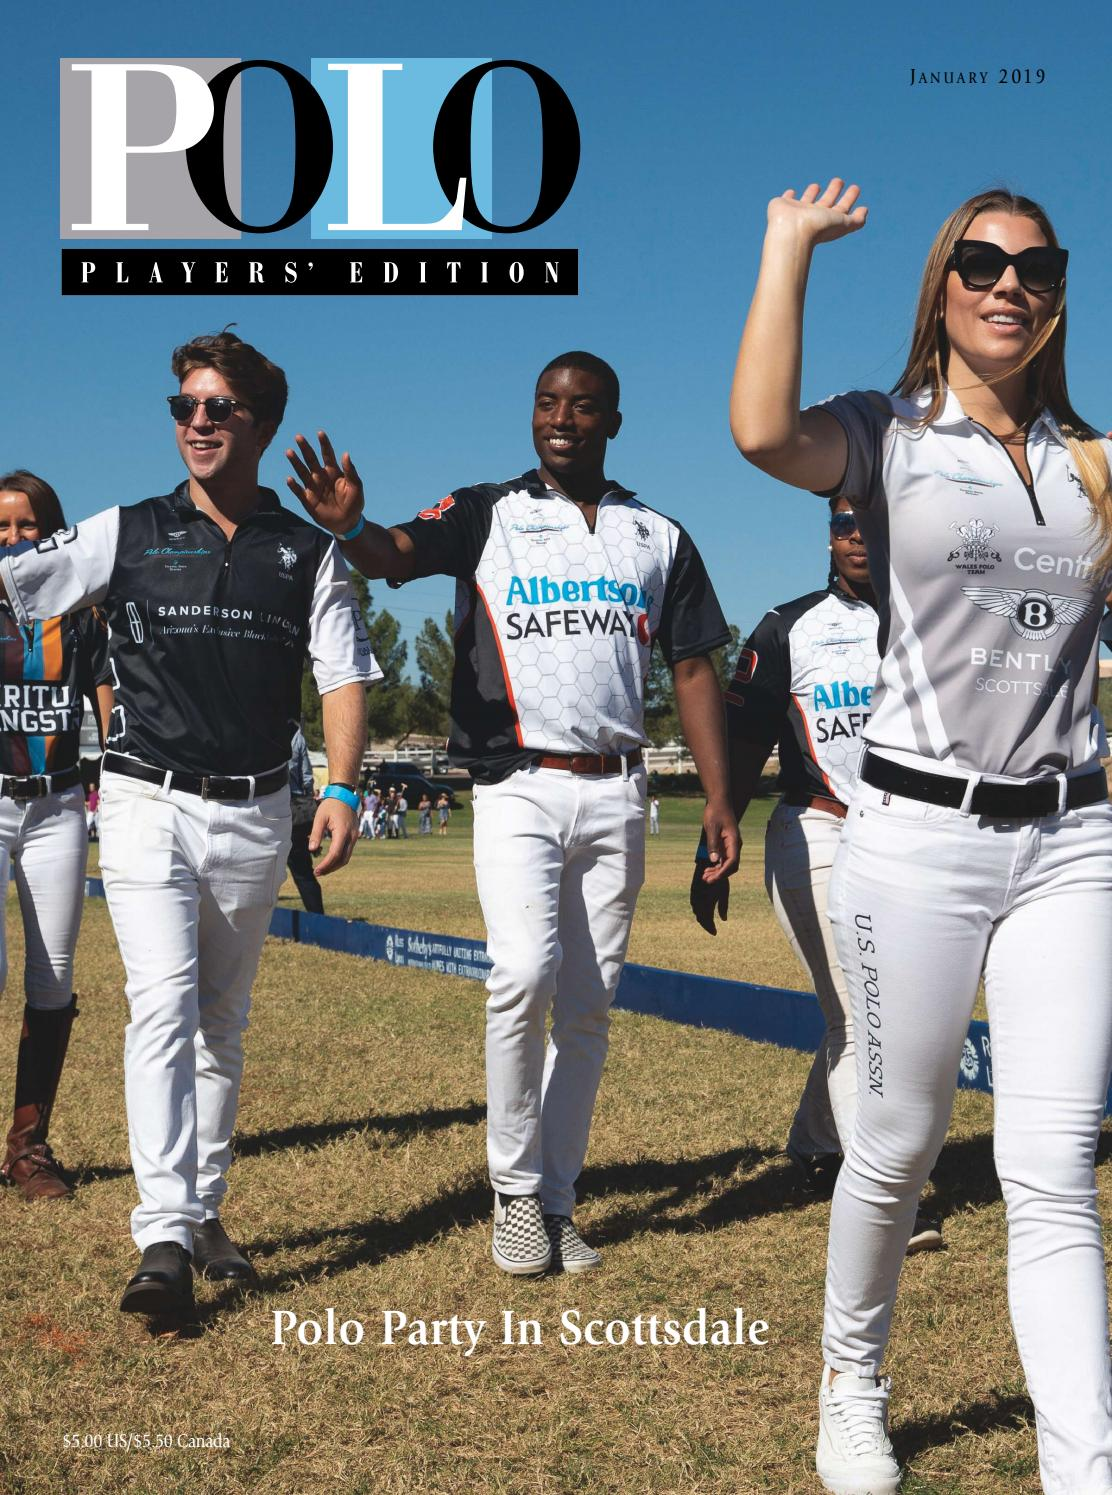 January 2019 Polo Players  Edition by United States Polo Association ... 6d83c7828b2f